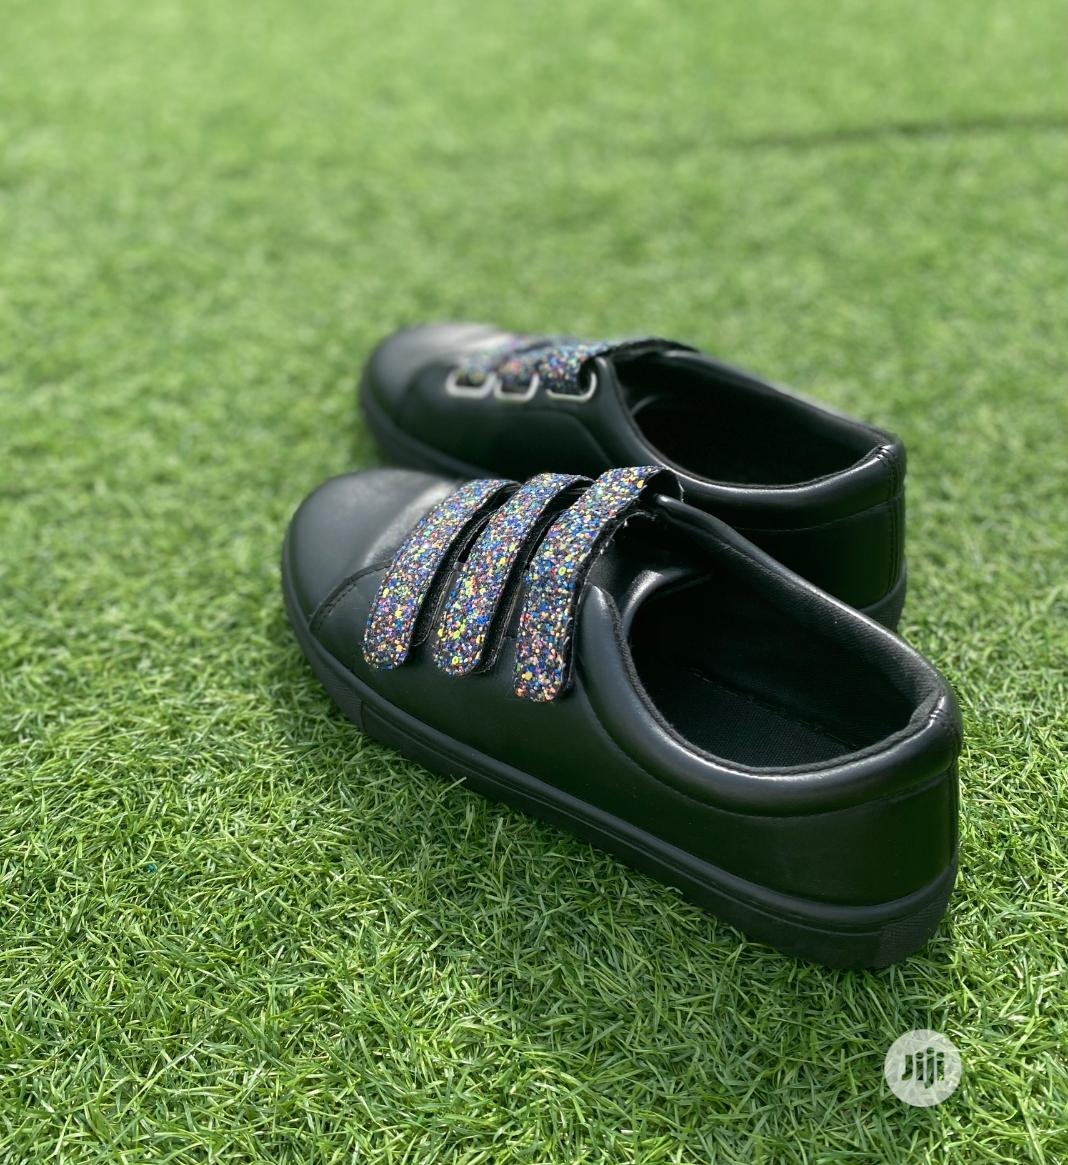 Fashion Female Black PU Ladies Sneakers | Shoes for sale in Surulere, Lagos State, Nigeria